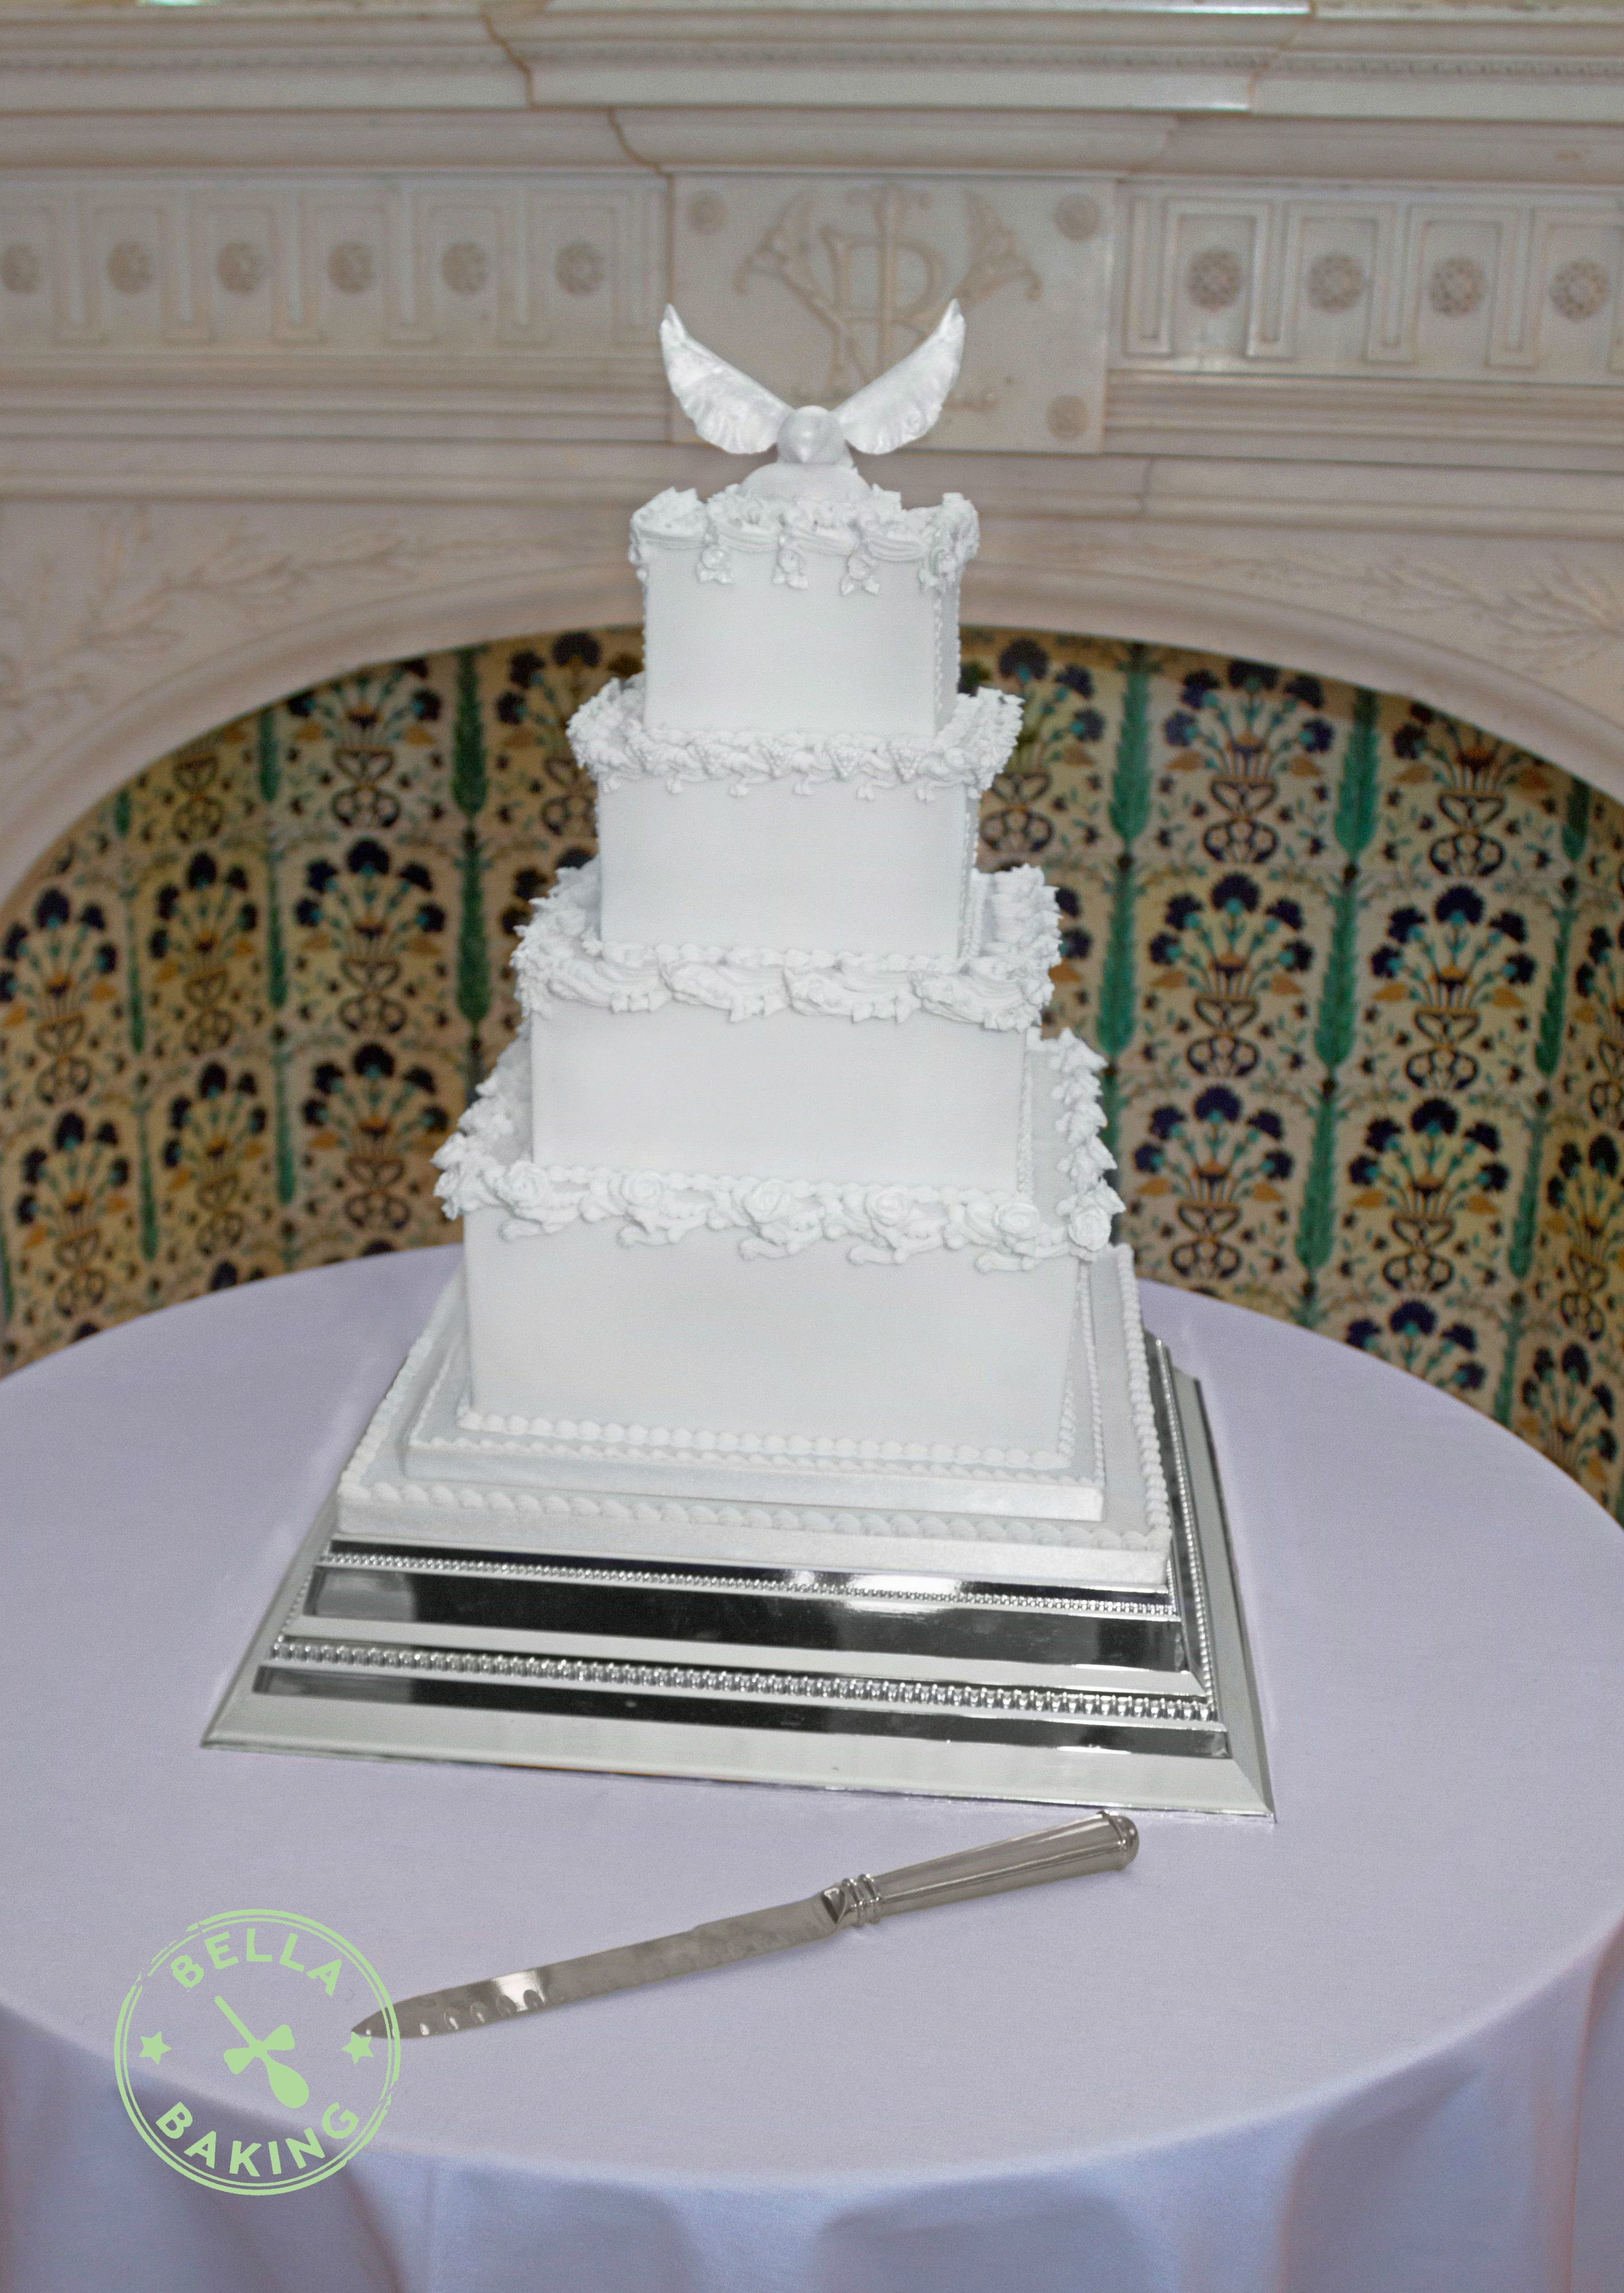 Wedding Cake Old English Style Royal Icing Over Piping And Modelled Winged Bird Topper Is Photographed In Situ At Osbourne House Isle Of Wight